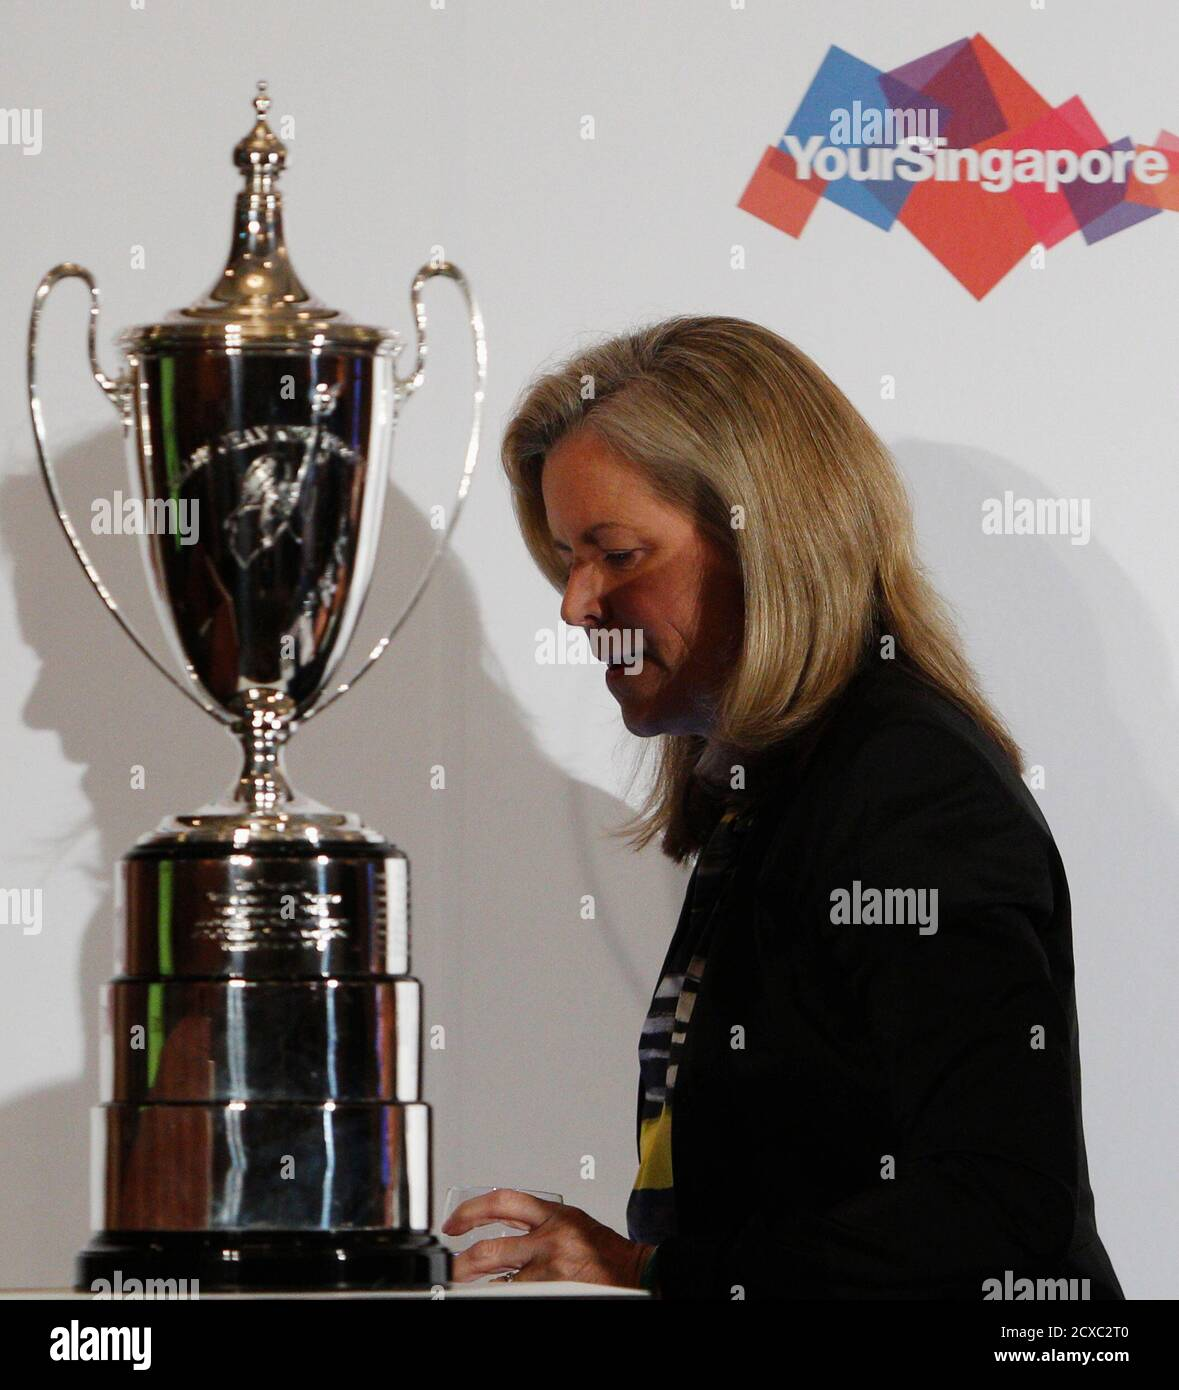 Stacey Allaster, Chairman and Chief Executive Officer of the Women's Tennis Association (WTA), walks past the Billie Jean King trophy during a WTA announcement in Singapore May 8, 2013. From left is Singapore Sports Council's CEO Lim Teck Yin, World Sports Group's Chief Operating Officer Andrew Georgiou and Singapore Tourism Board's CEO Lionel Yeo. Singapore will host the glittering annual finale of the women's tennis season from 2014 until 2018, the WTA said on Wednesday.  REUTERS/Edgar Su (SINGAPORE - Tags: SPORT TENNIS) Foto de stock